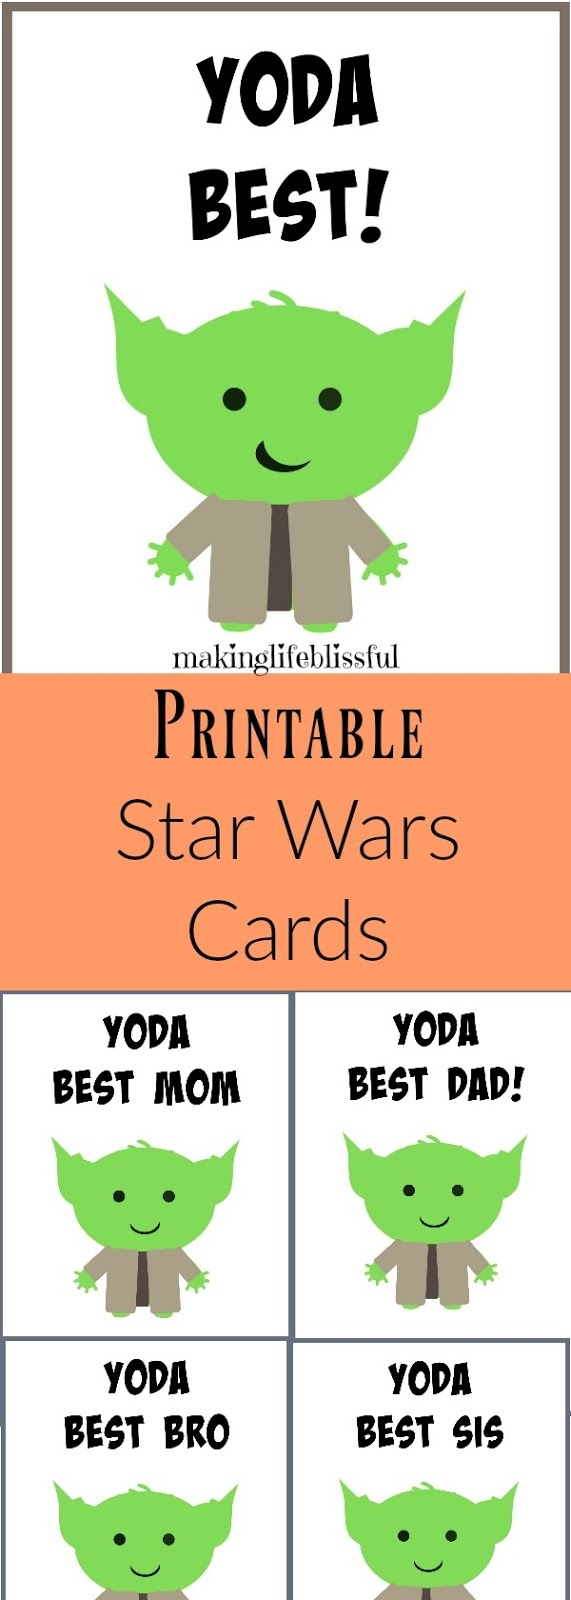 graphic regarding Yoda Printable named No cost YODA Suitable Father Star Wars Fathers Working day Printable Generating